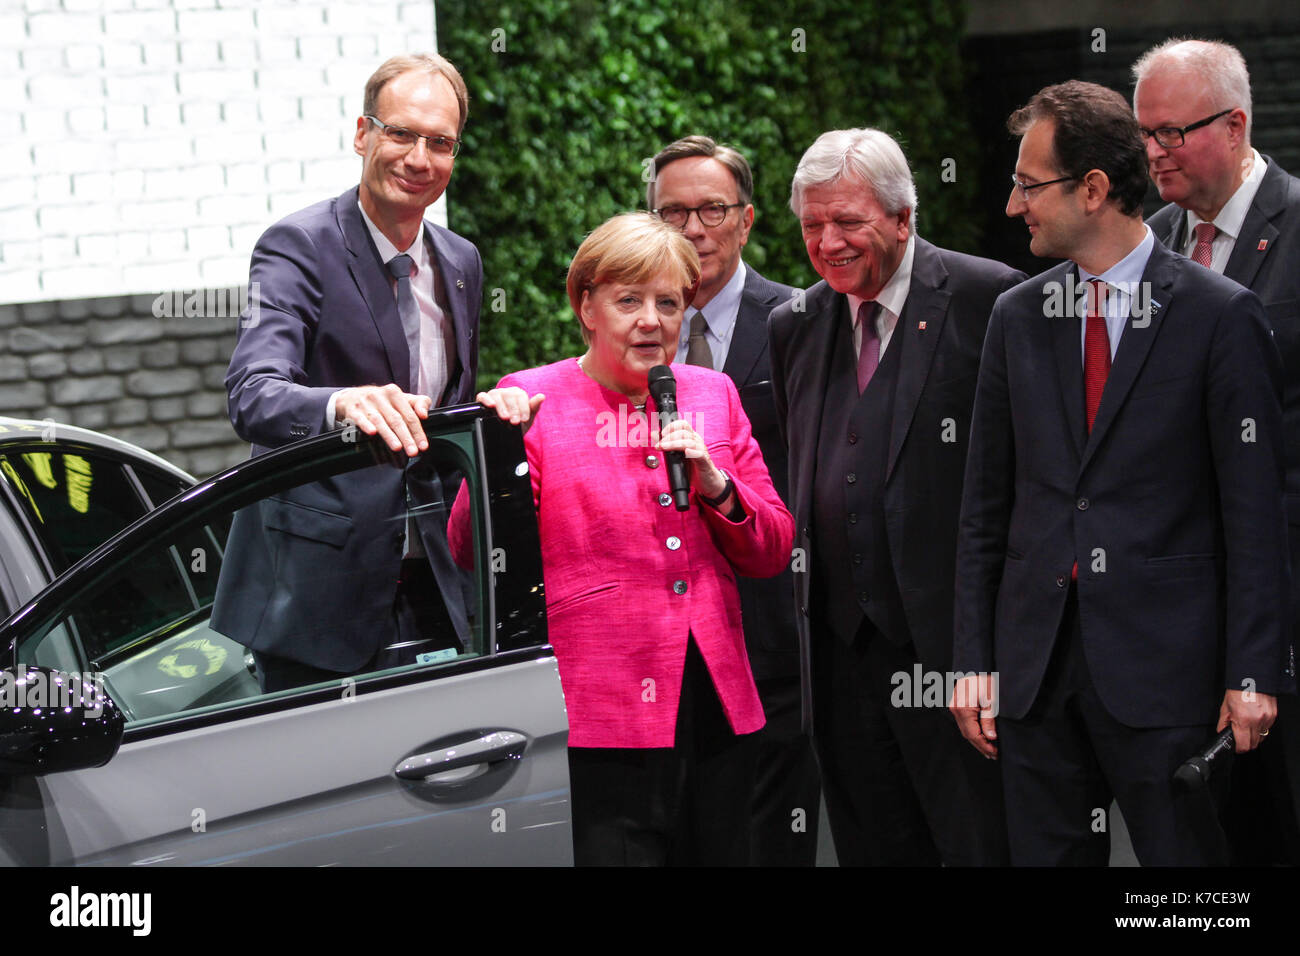 Frankfurt, Germany. 14th September, 2017. International Motor Show 2017 (IAA, Internationale Automobil-Ausstellung), opening walk with Angela Merkel, chancellor of Germany, here at Opel booth: Michael Lohscheller (CEO Opel), Angela Merkel, Matthias Wissmann (president of German Association of the Automotive Industry, VDA, Verband der Automobilindustrie), Volker Bouffier (prime minister of Hesse), Philippe de Rovira (Chief Financial Officer Opel), Thomas Schäfer (Minister of Finance of the state of Hesse). Credit: Christian Lademann - Stock Image